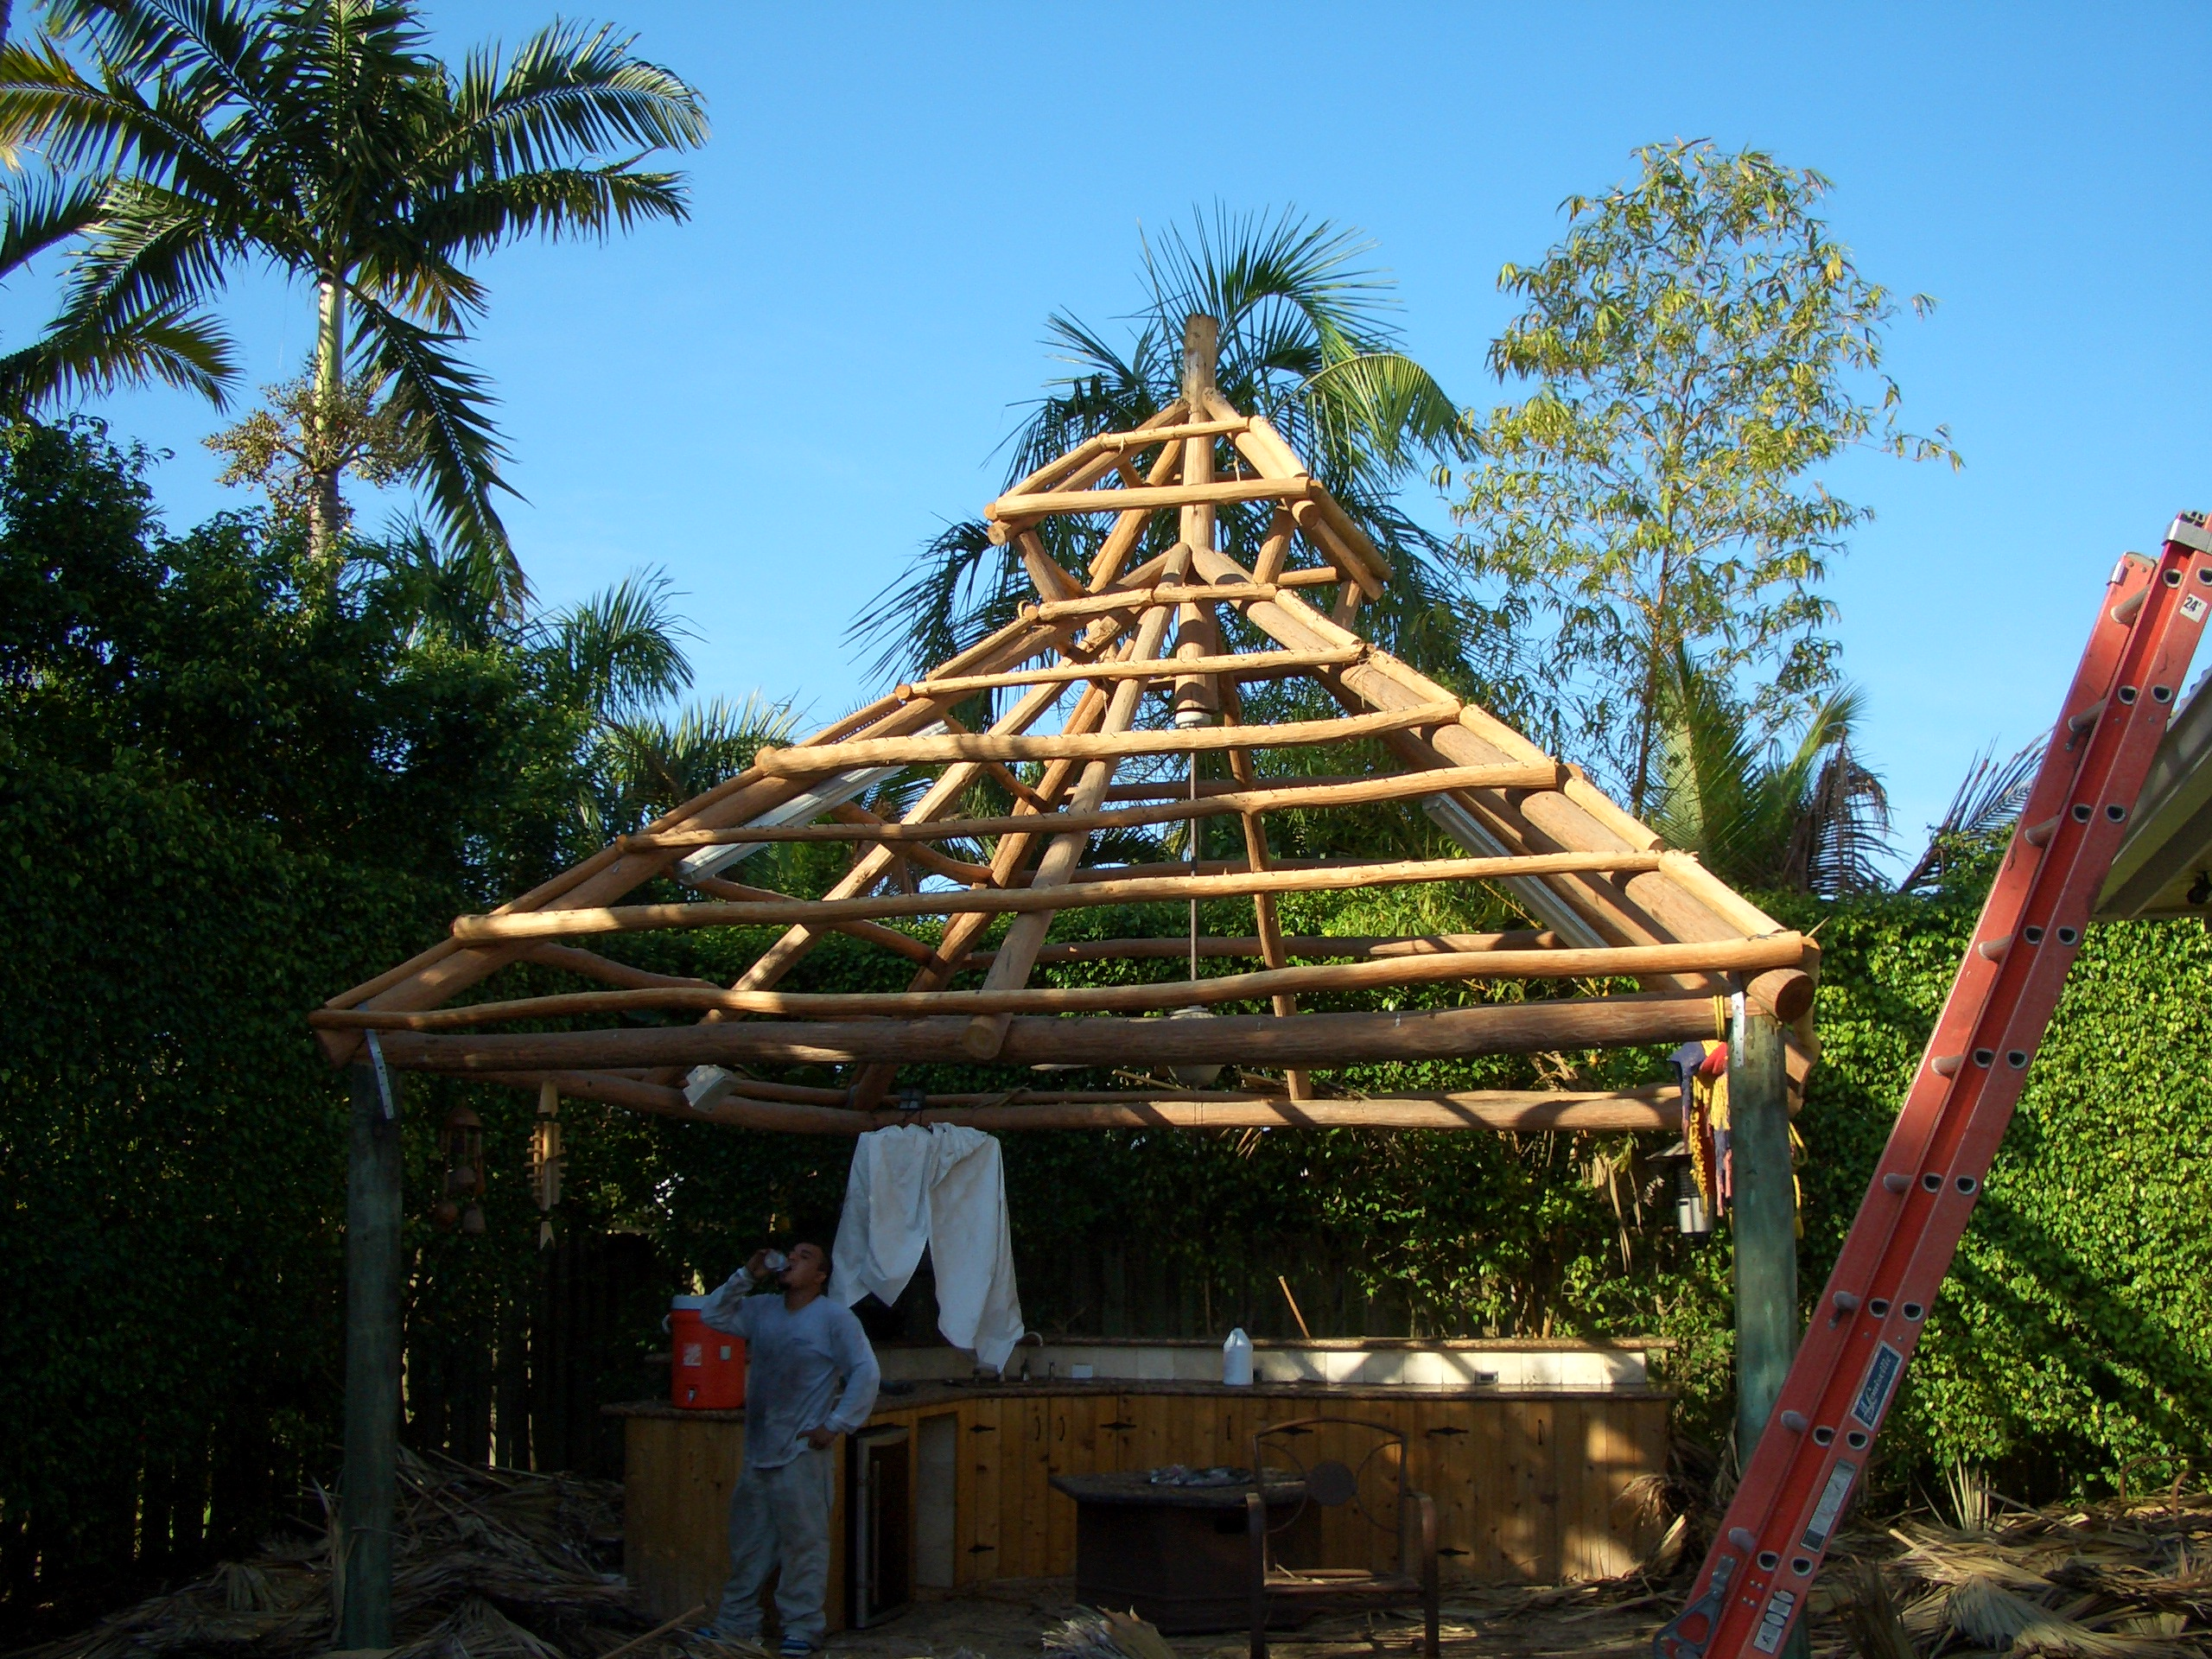 Tiki huts often violate South Florida zoning rules